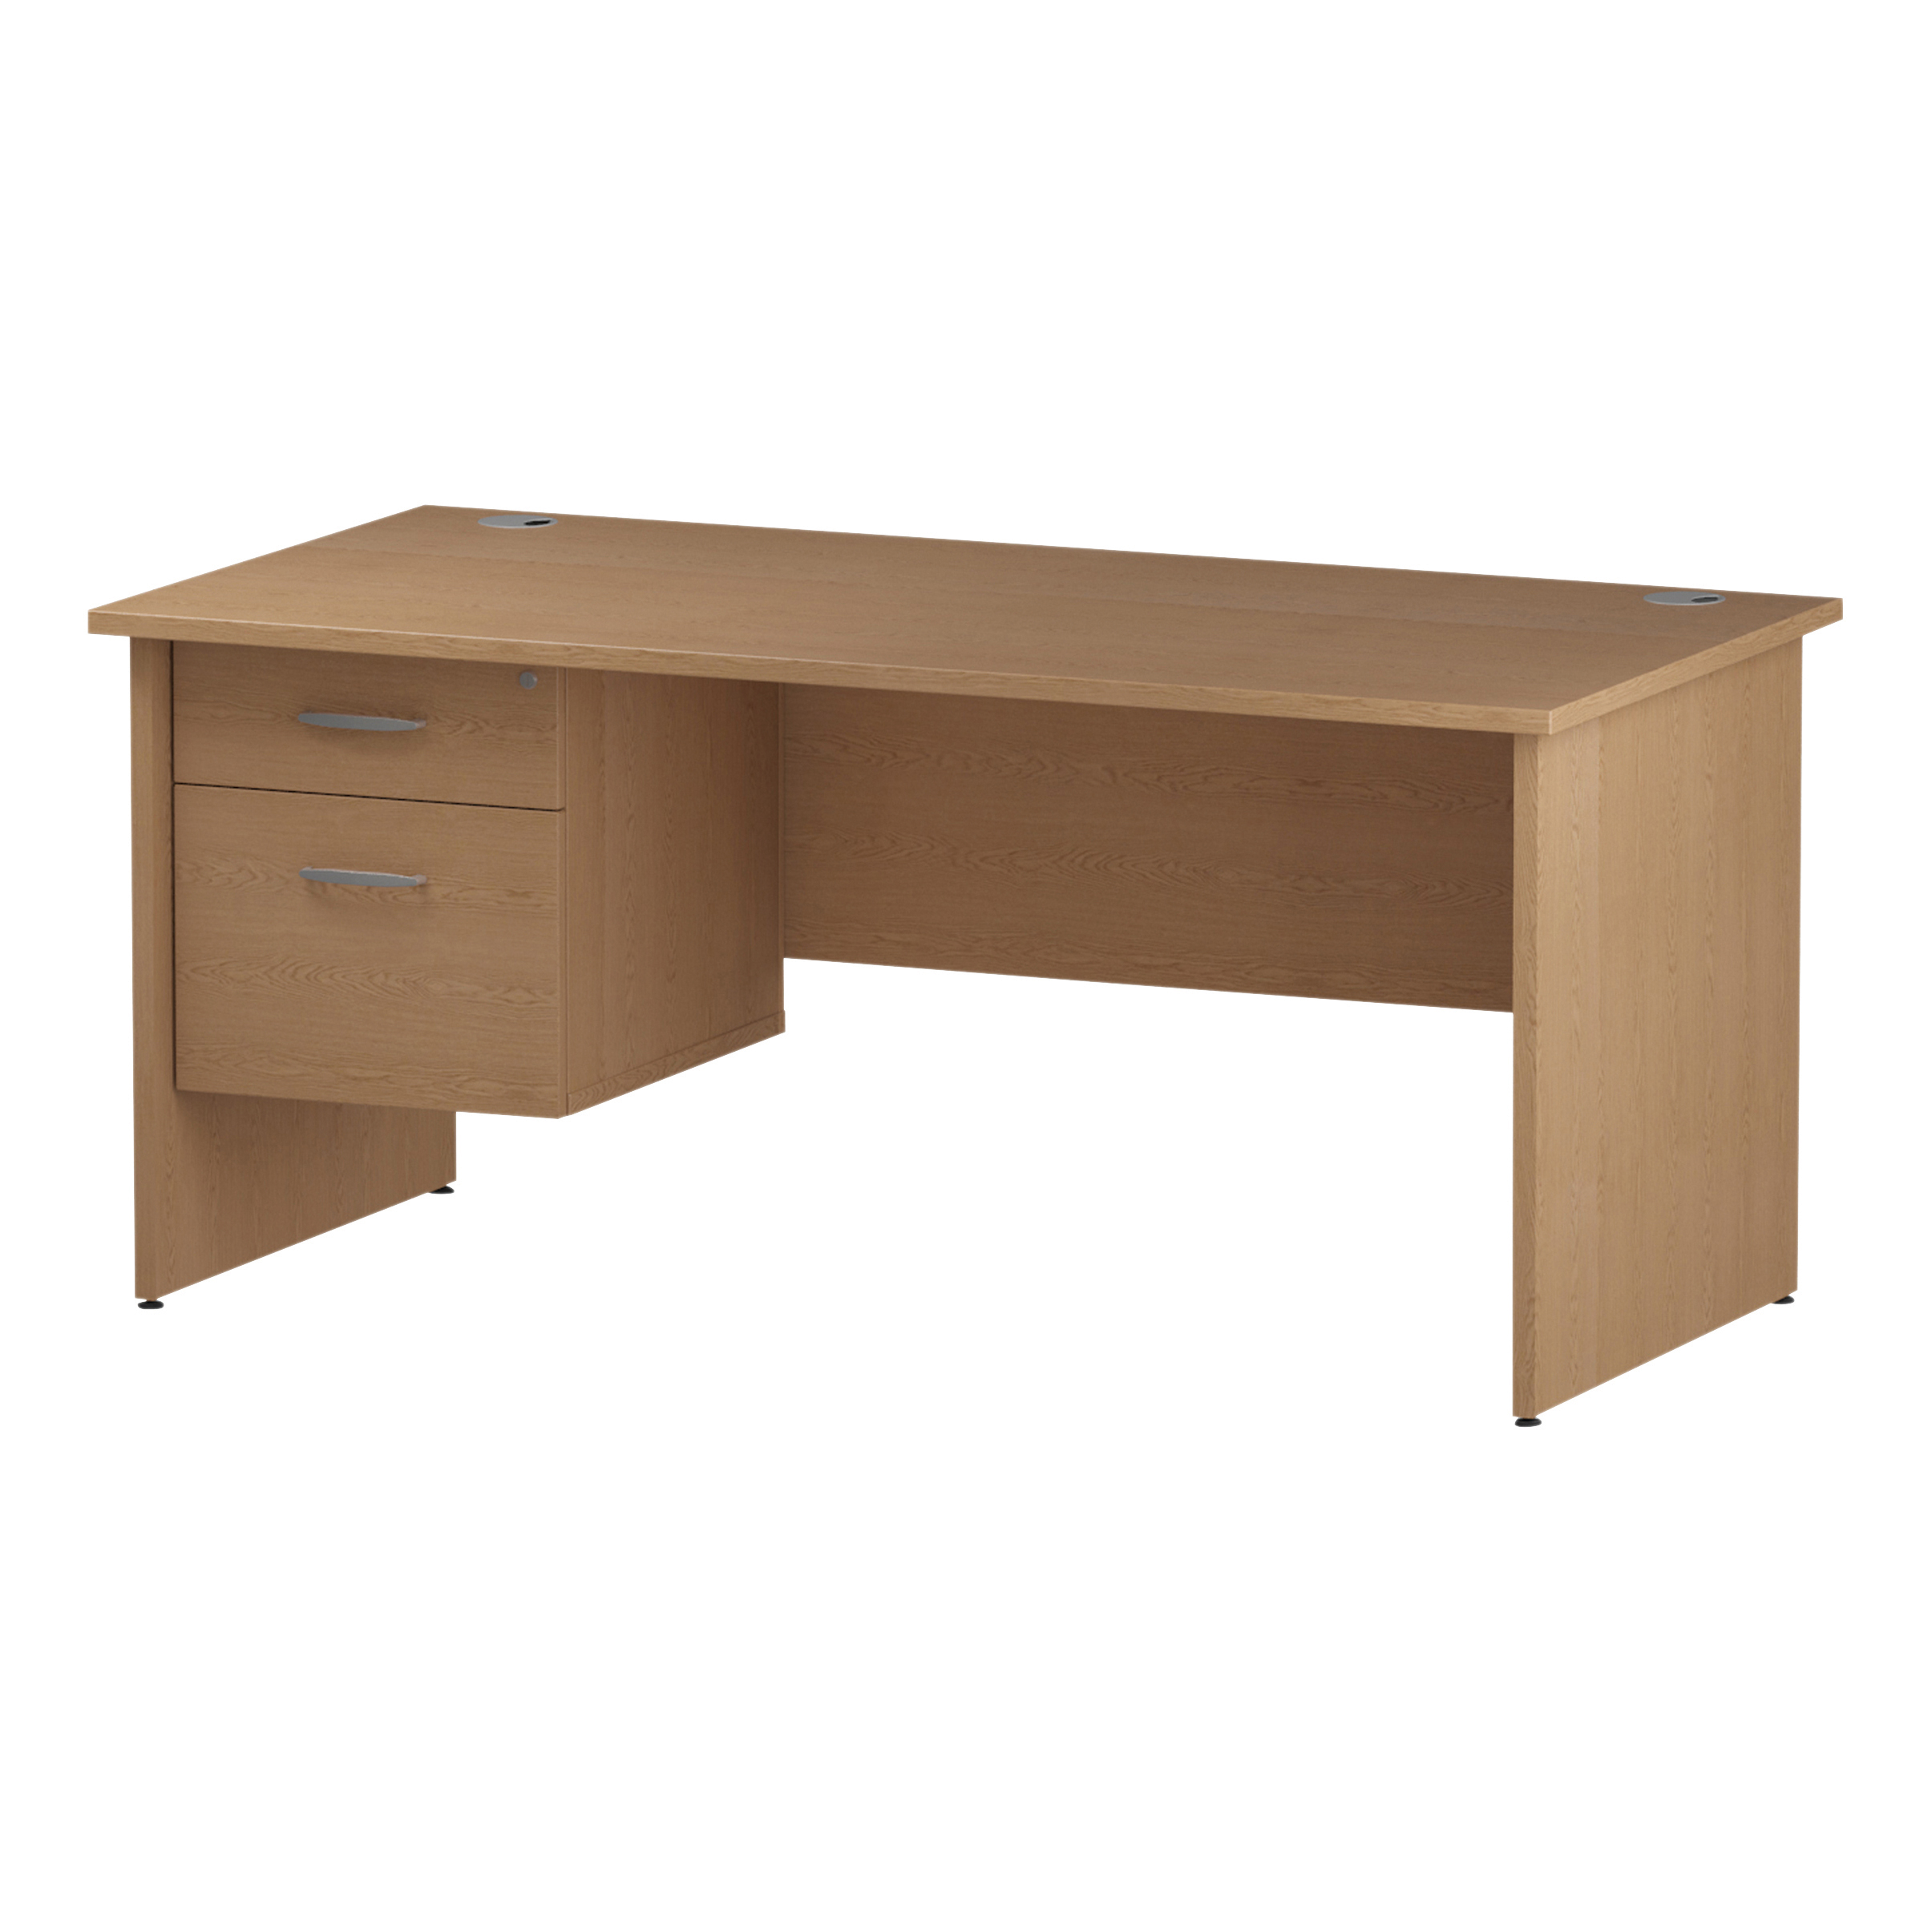 Trexus Rectangular Desk Panel End Leg 1600x800mm Fixed Pedestal 2 Drawers Oak Ref I002704